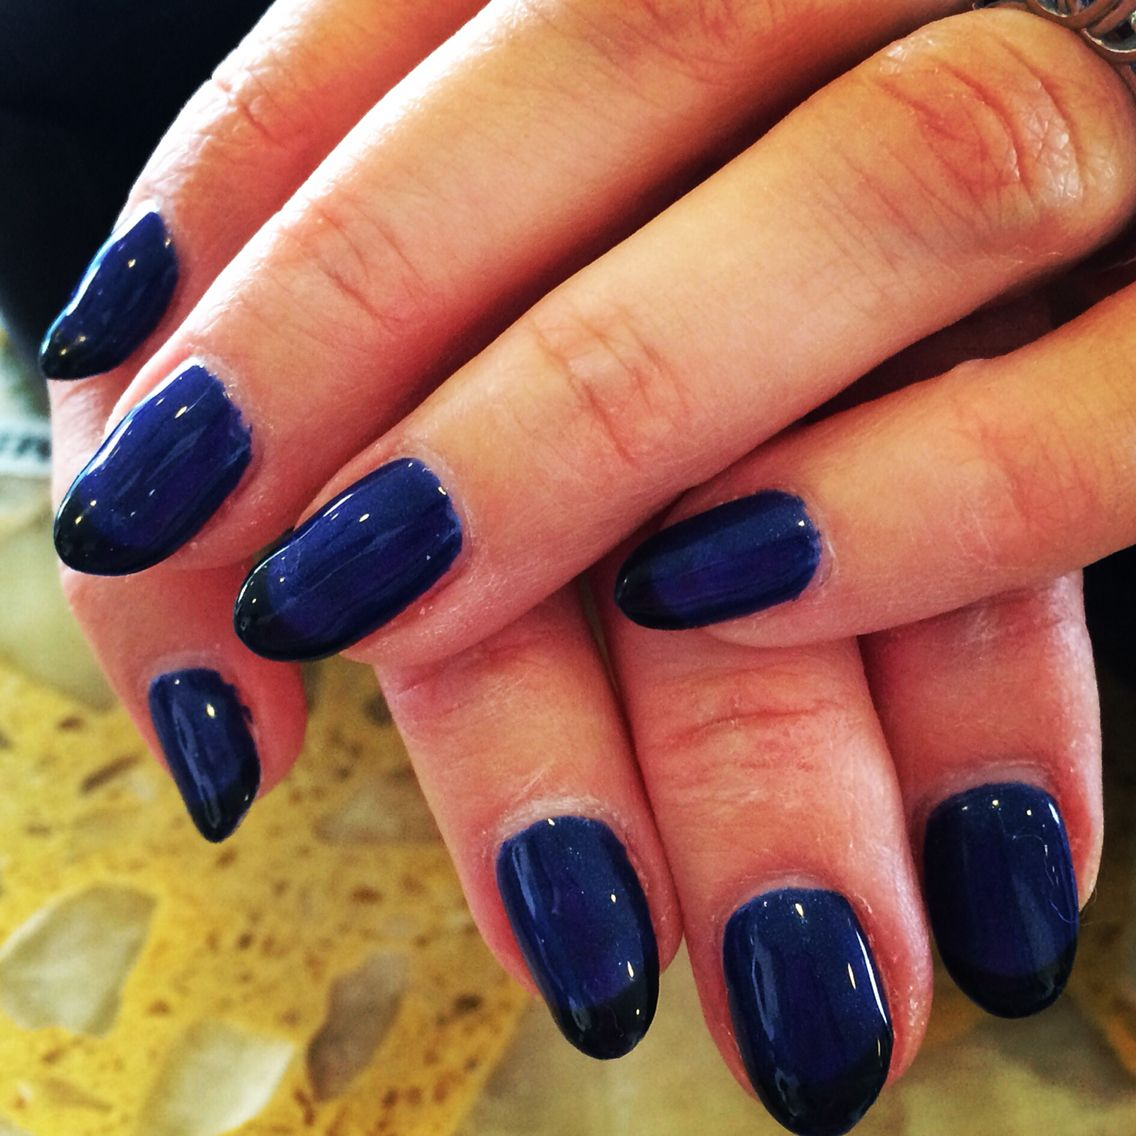 Nails by Nail Care in Bayville, NJ   Nails   Pinterest   Nail care